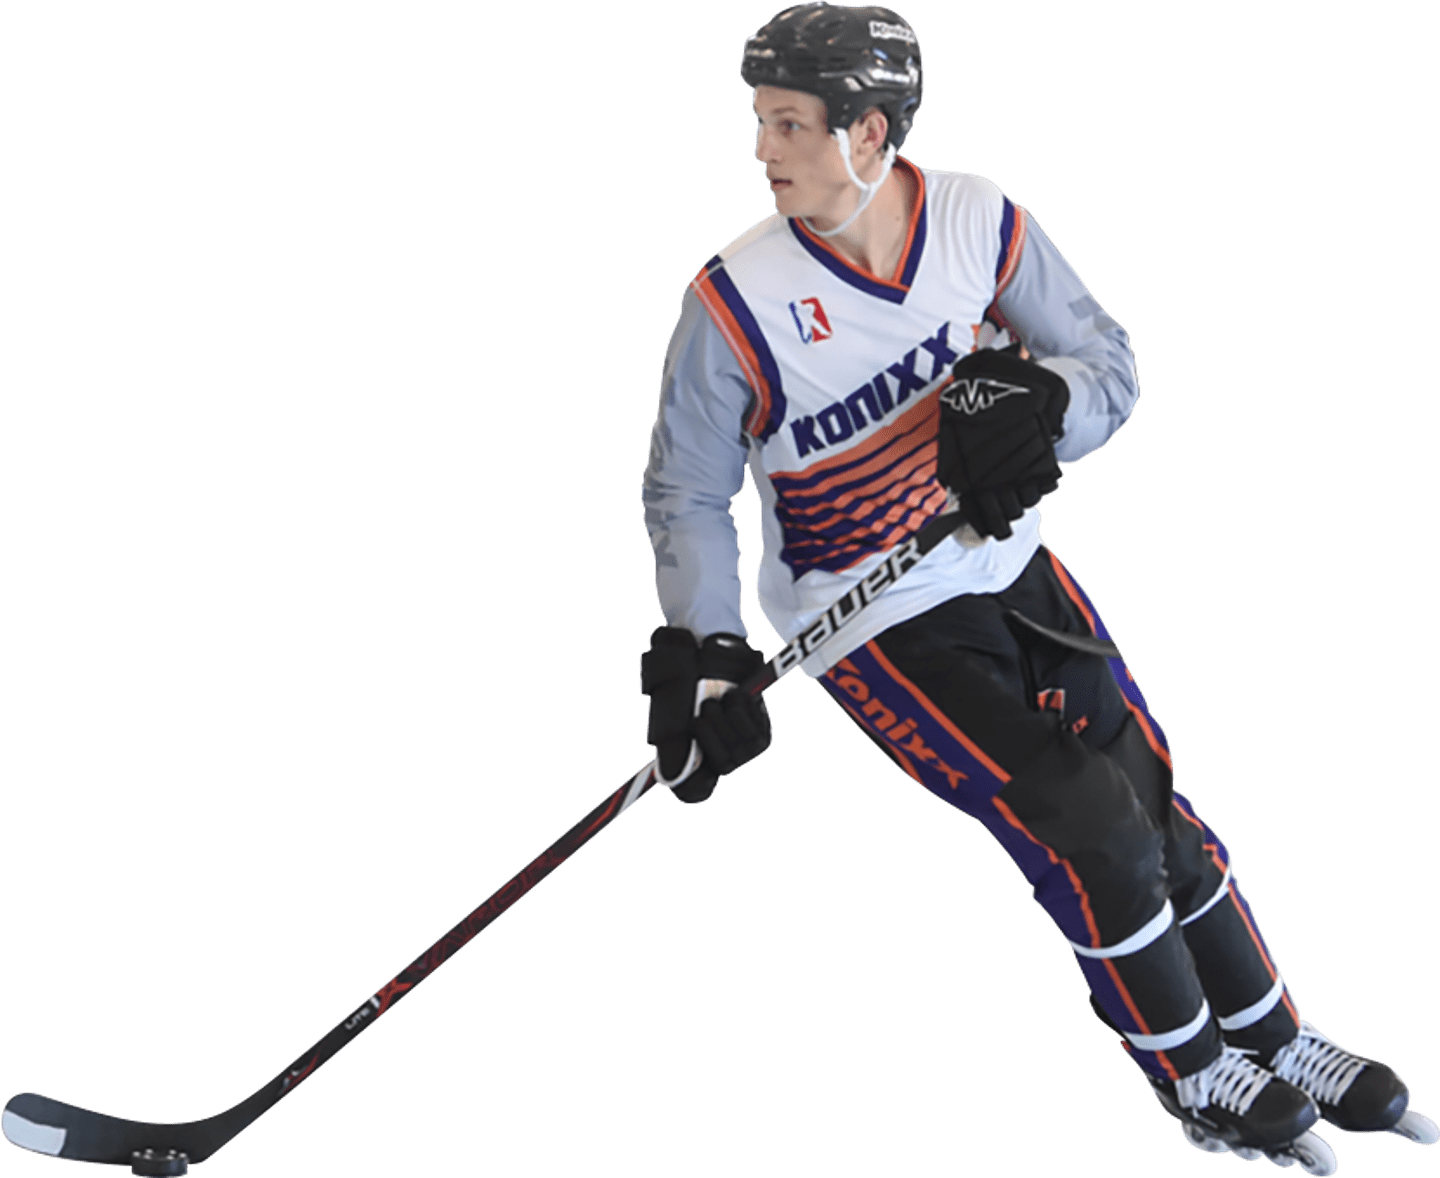 Ice hockey player in full uniform skating on the ice